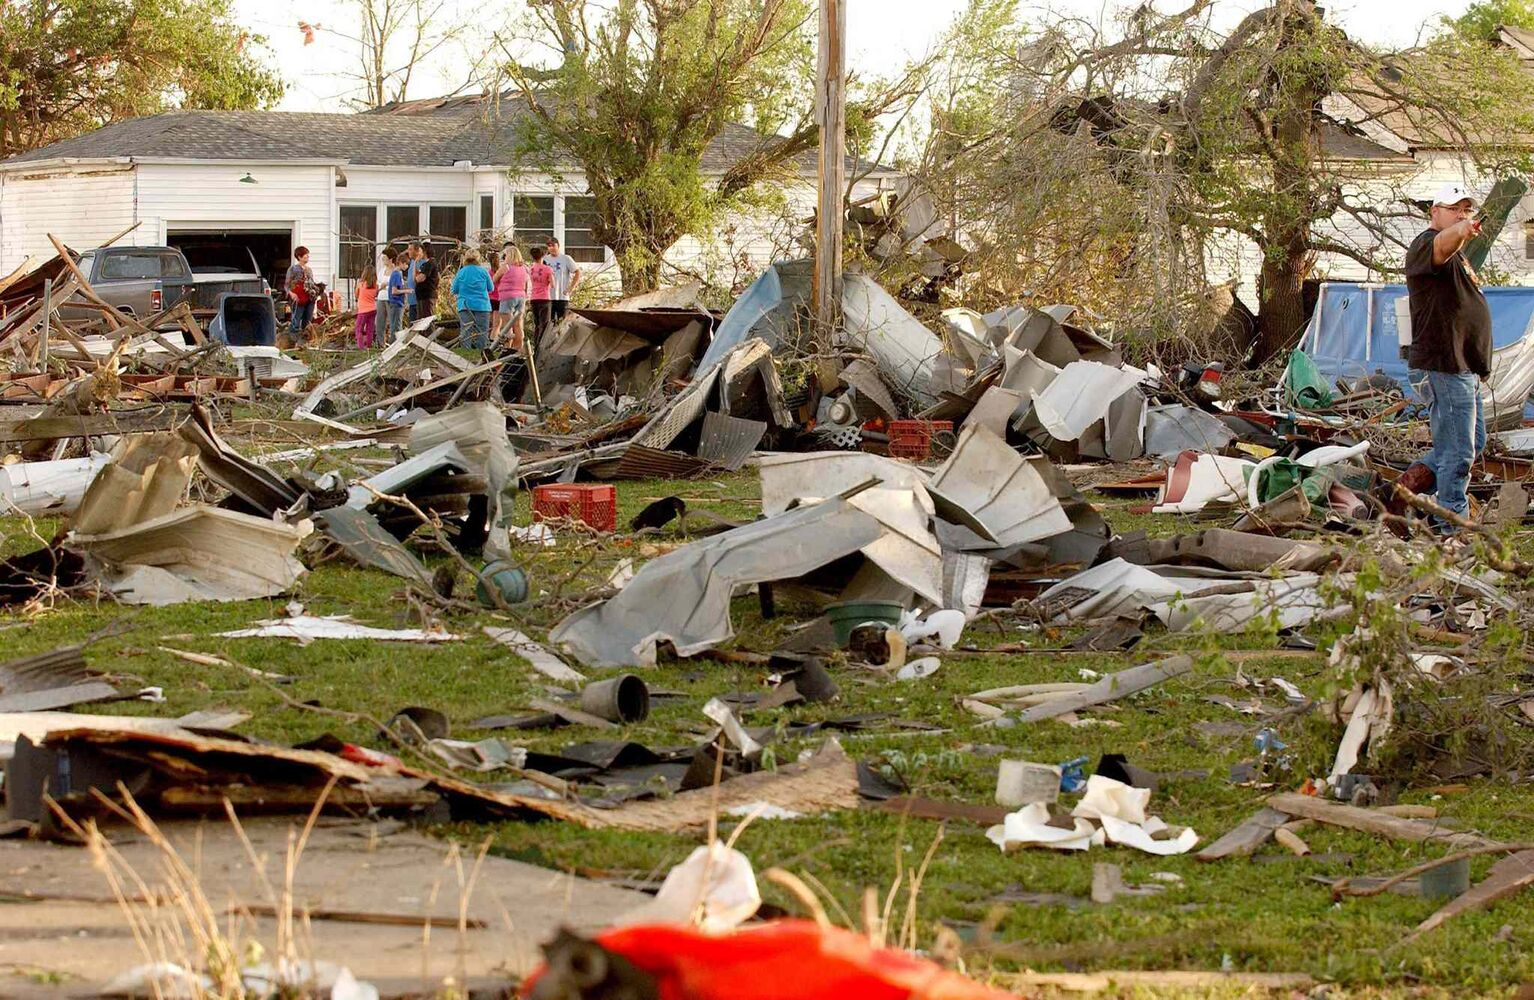 Quapaw, Okla., residents survey the damage in a residential neighbourhood struck by a tornado on Sunday evening. (GARY CROW / TULSA WORLD / THE ASSOCIATED PRESS)